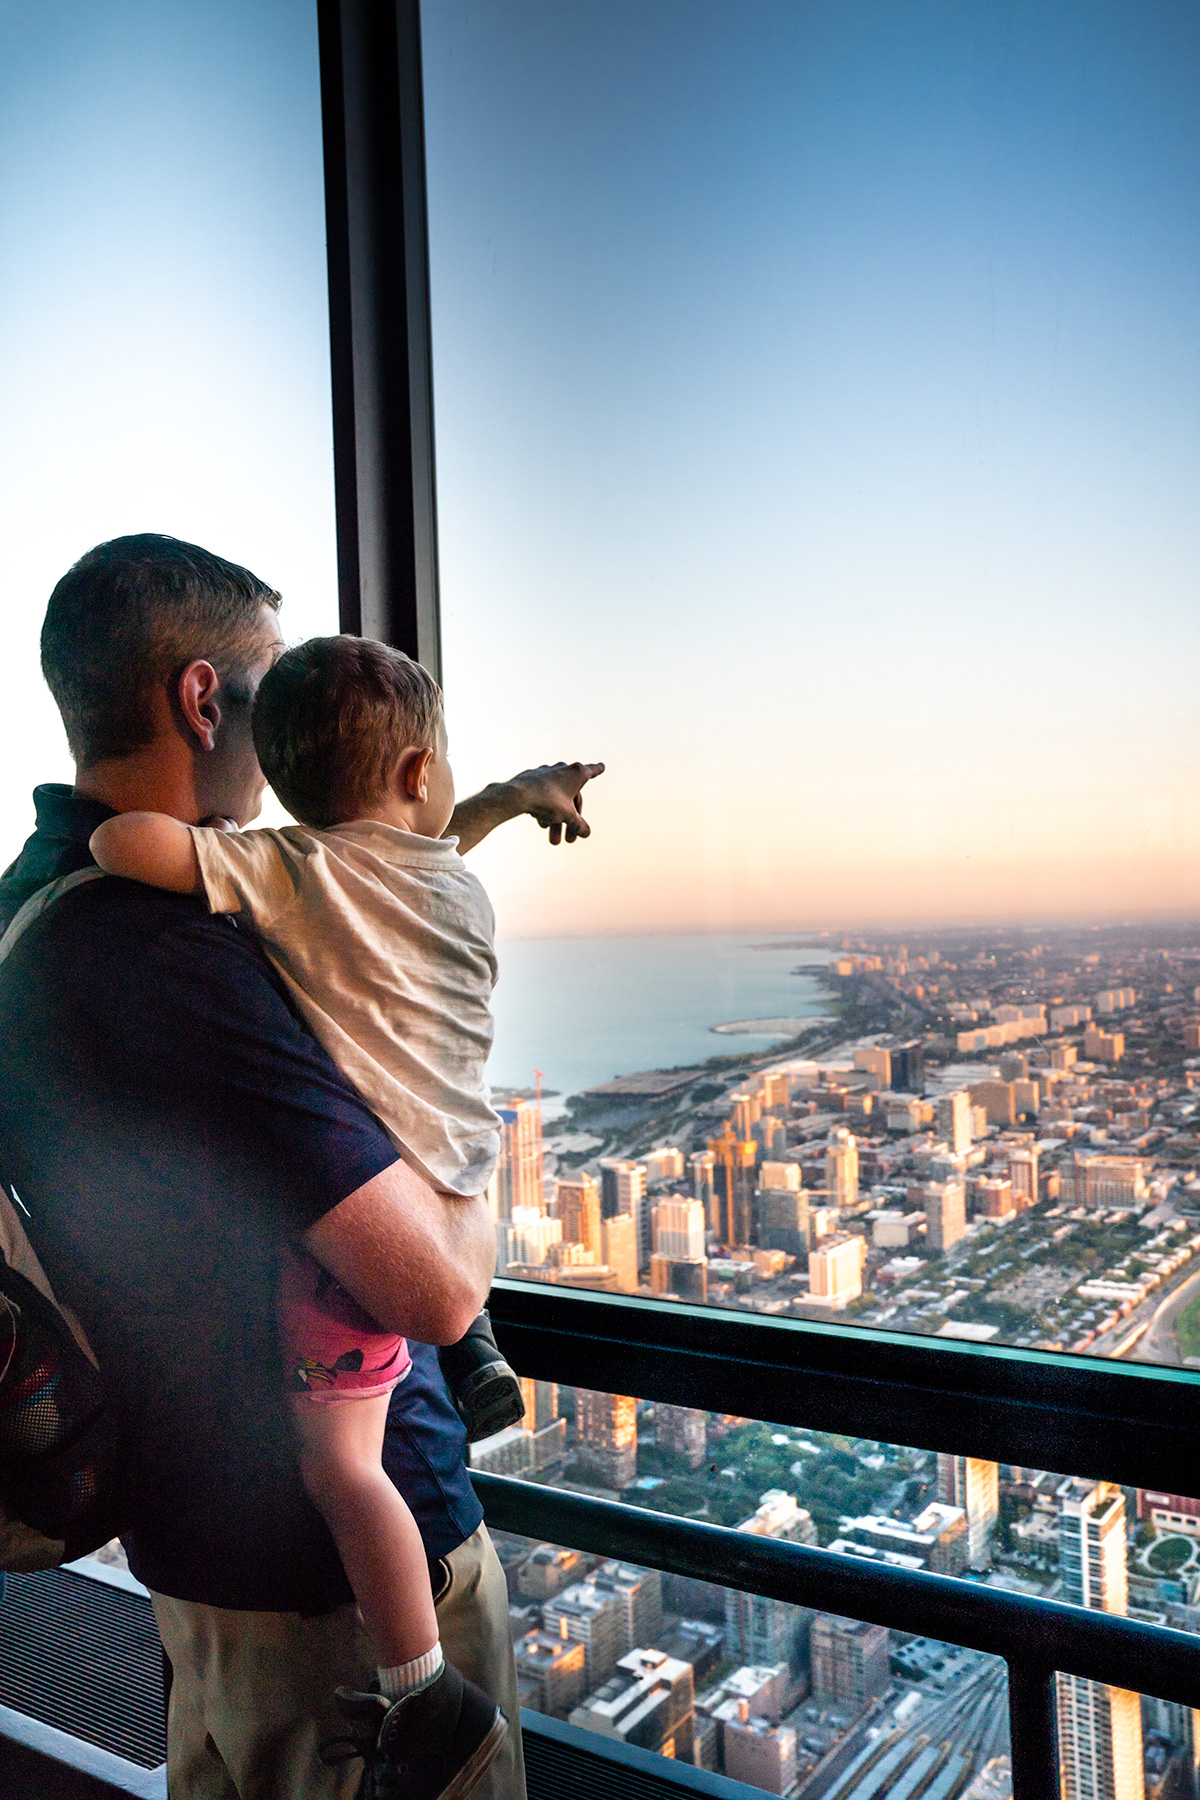 City-View-at-Sunset-Chicago-Skydeck-Willis-Tower